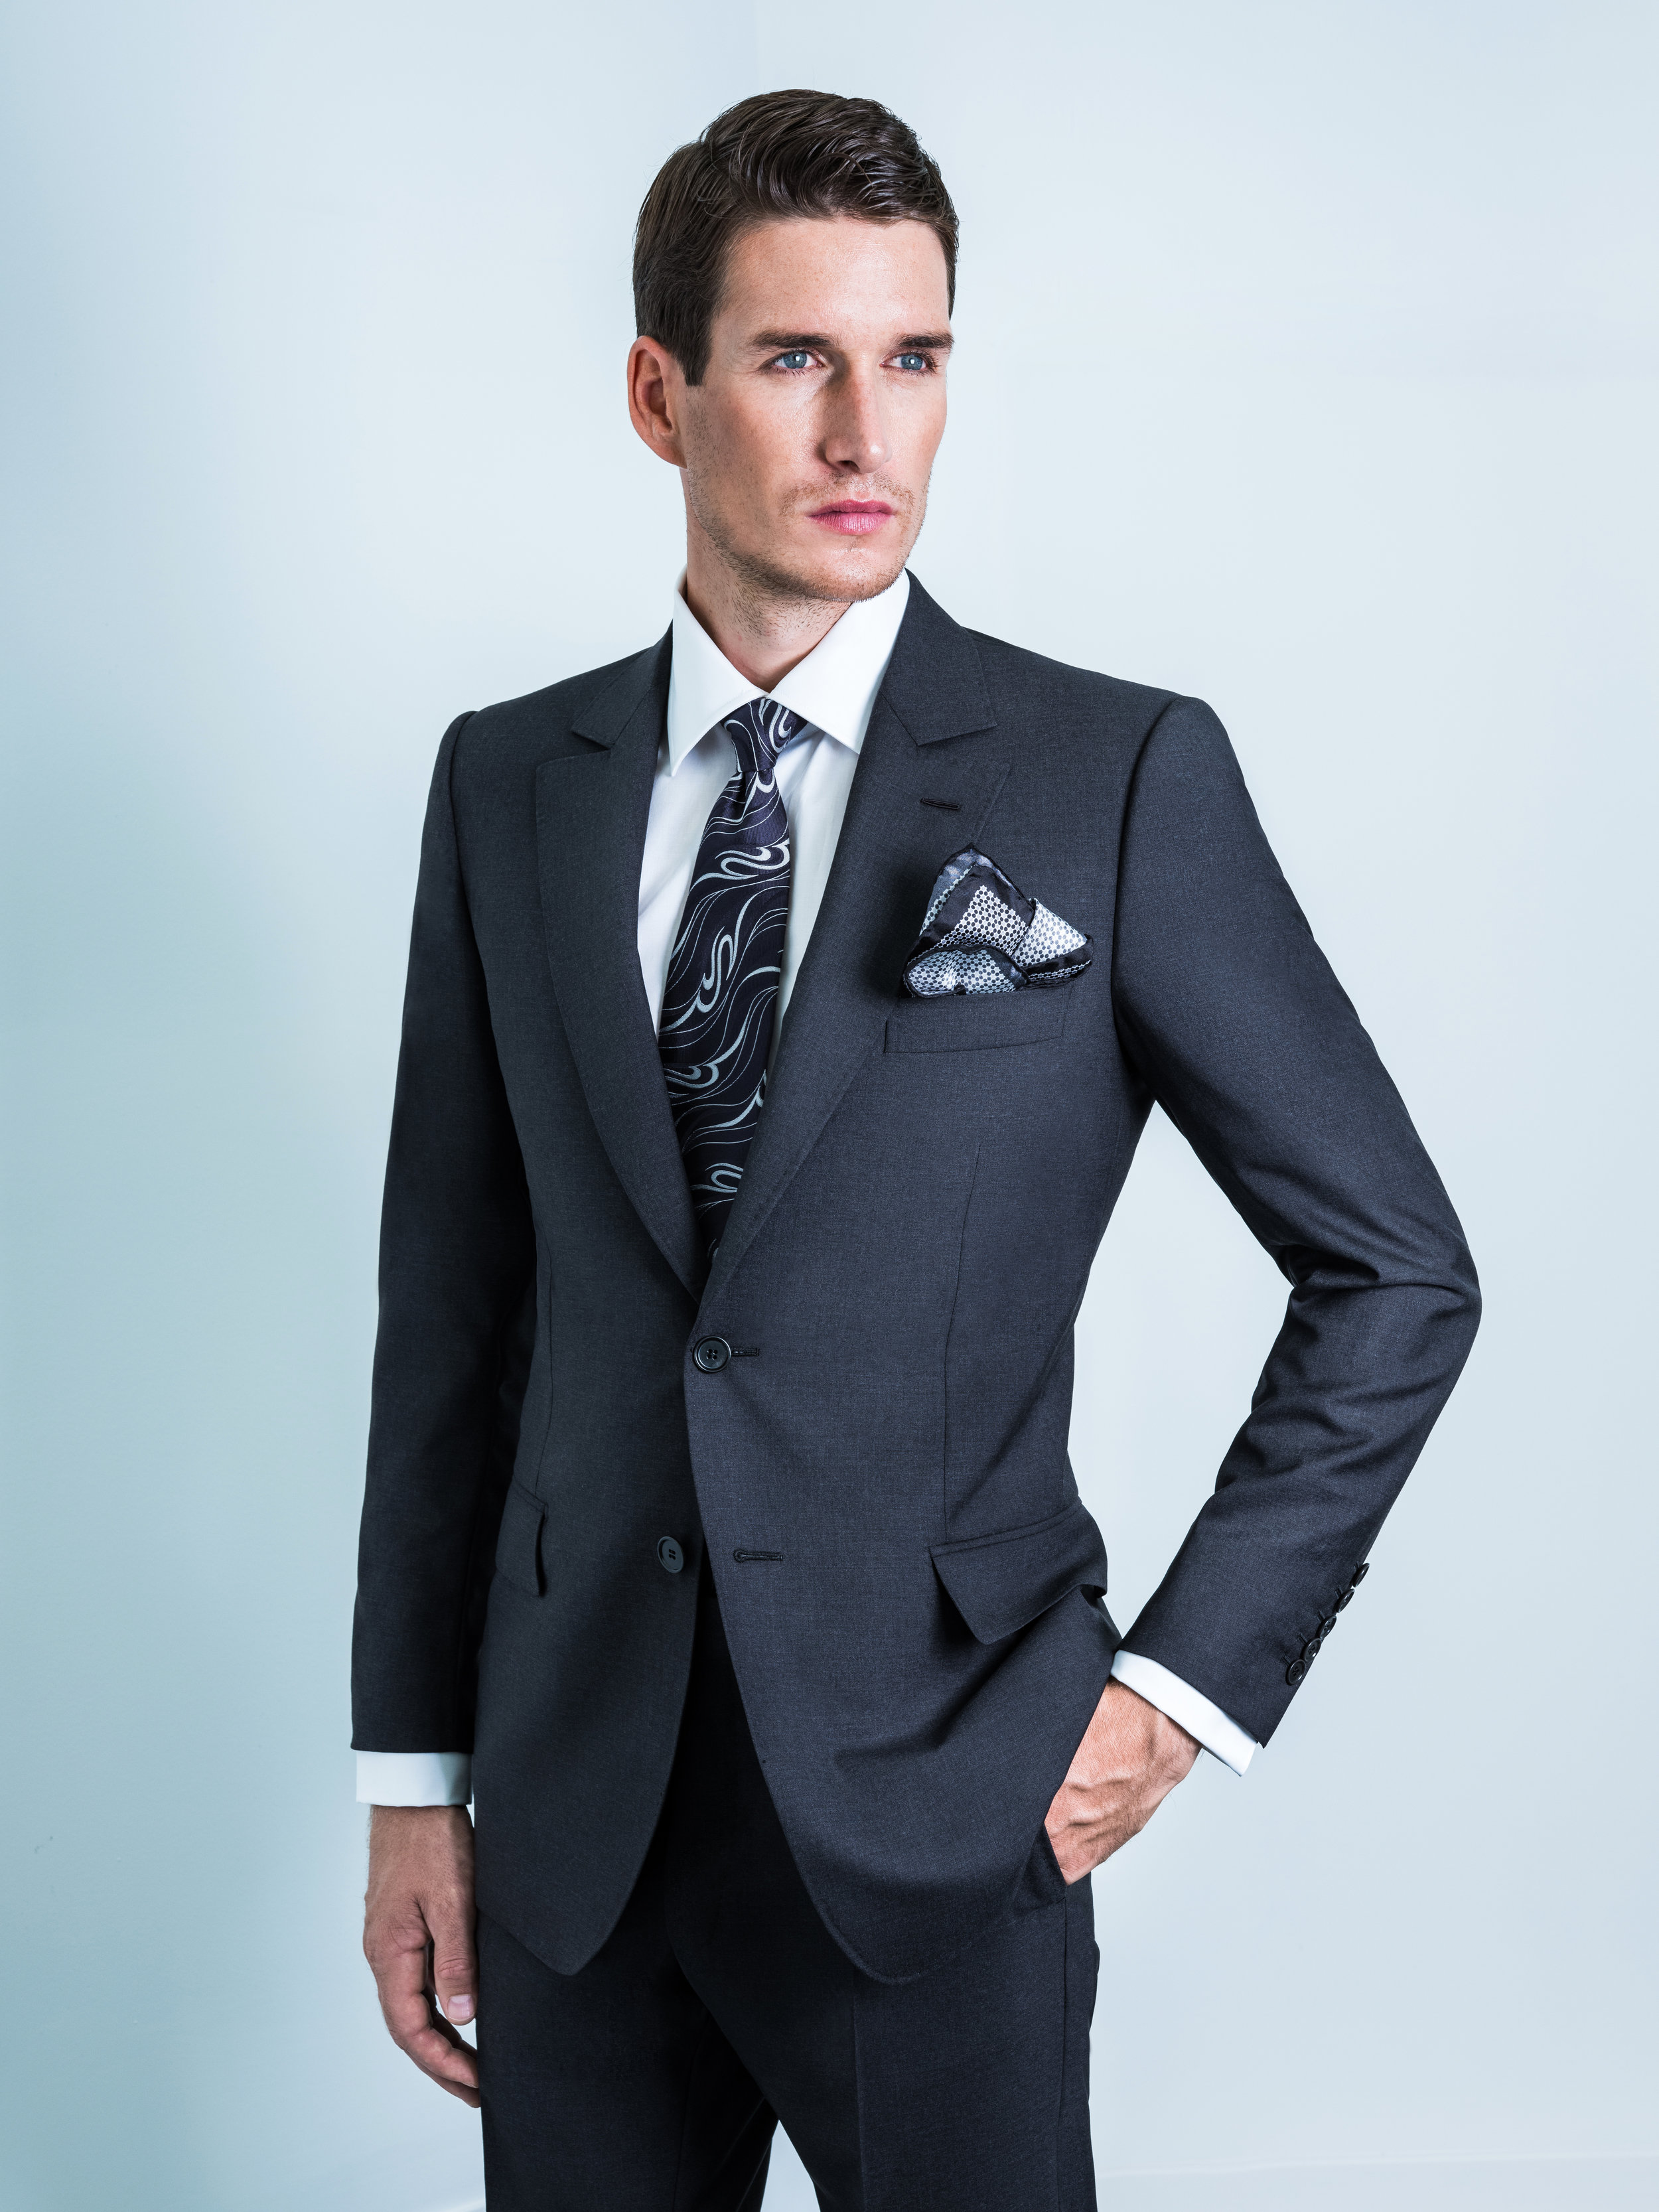 Suits & Tuxedos -